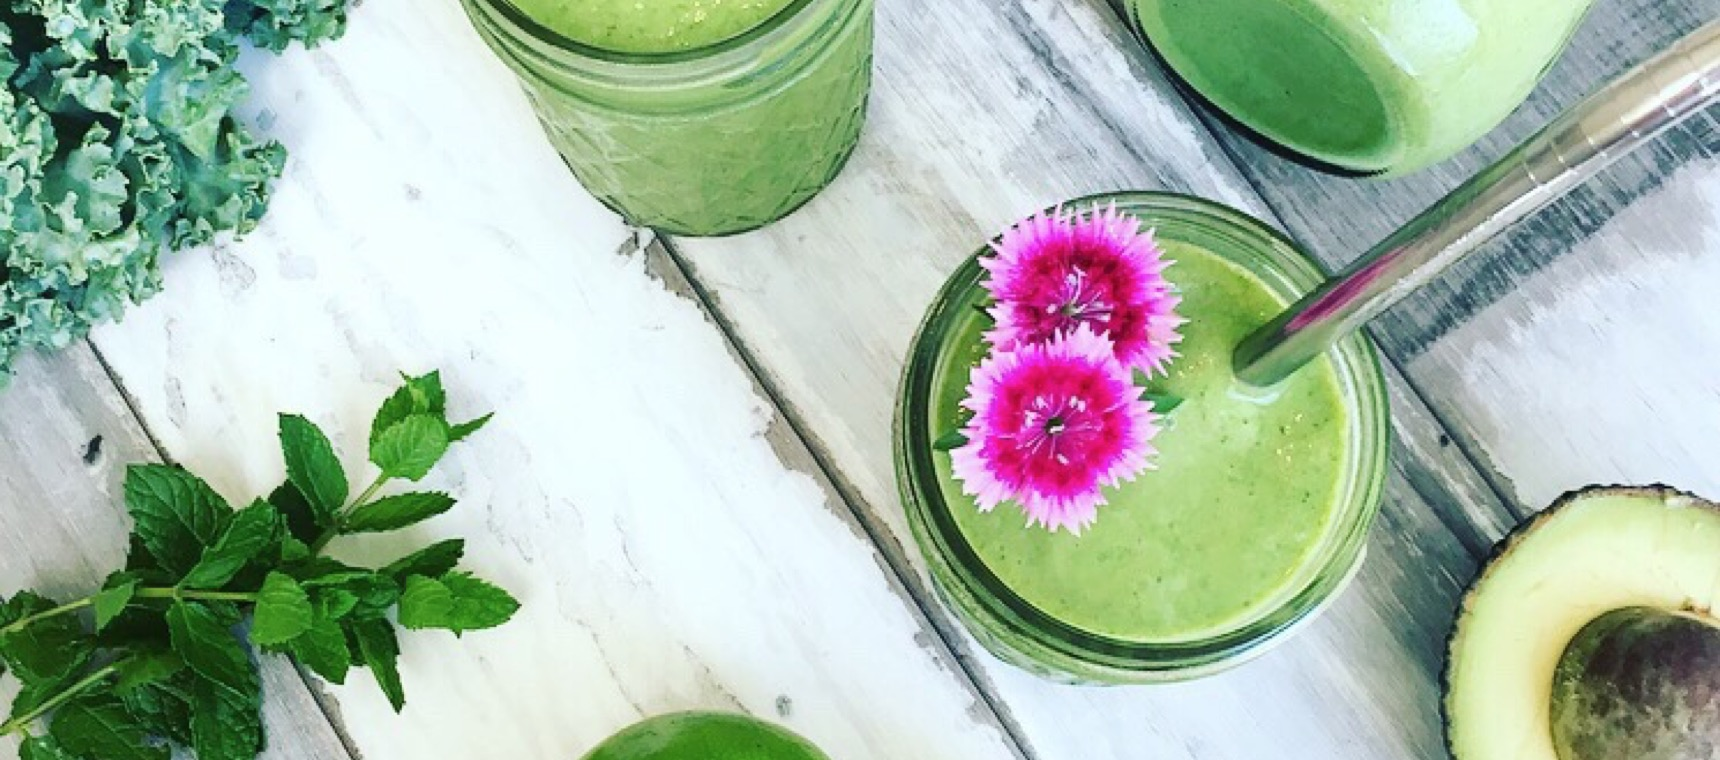 Kale Lime Coconut Smoothie